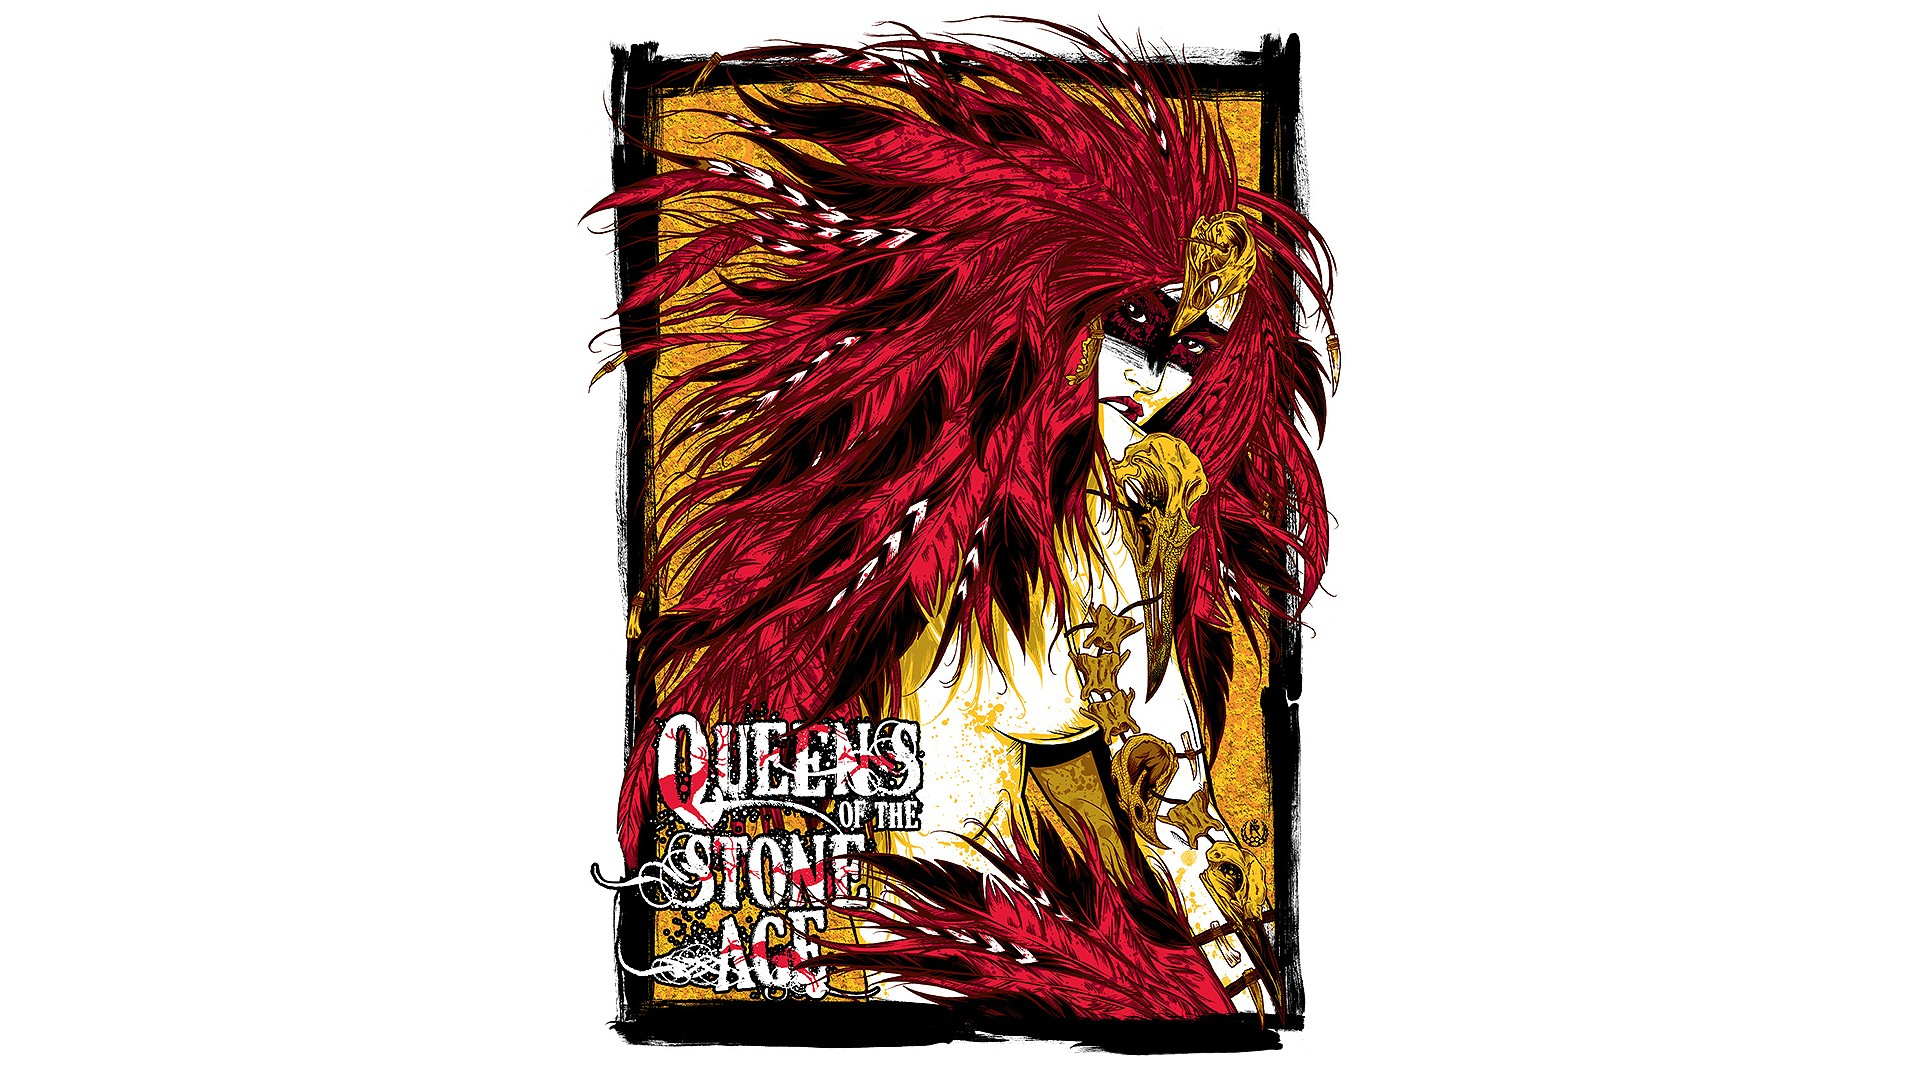 Free Download Queens Of The Stone Age Computer Wallpapers Desktop